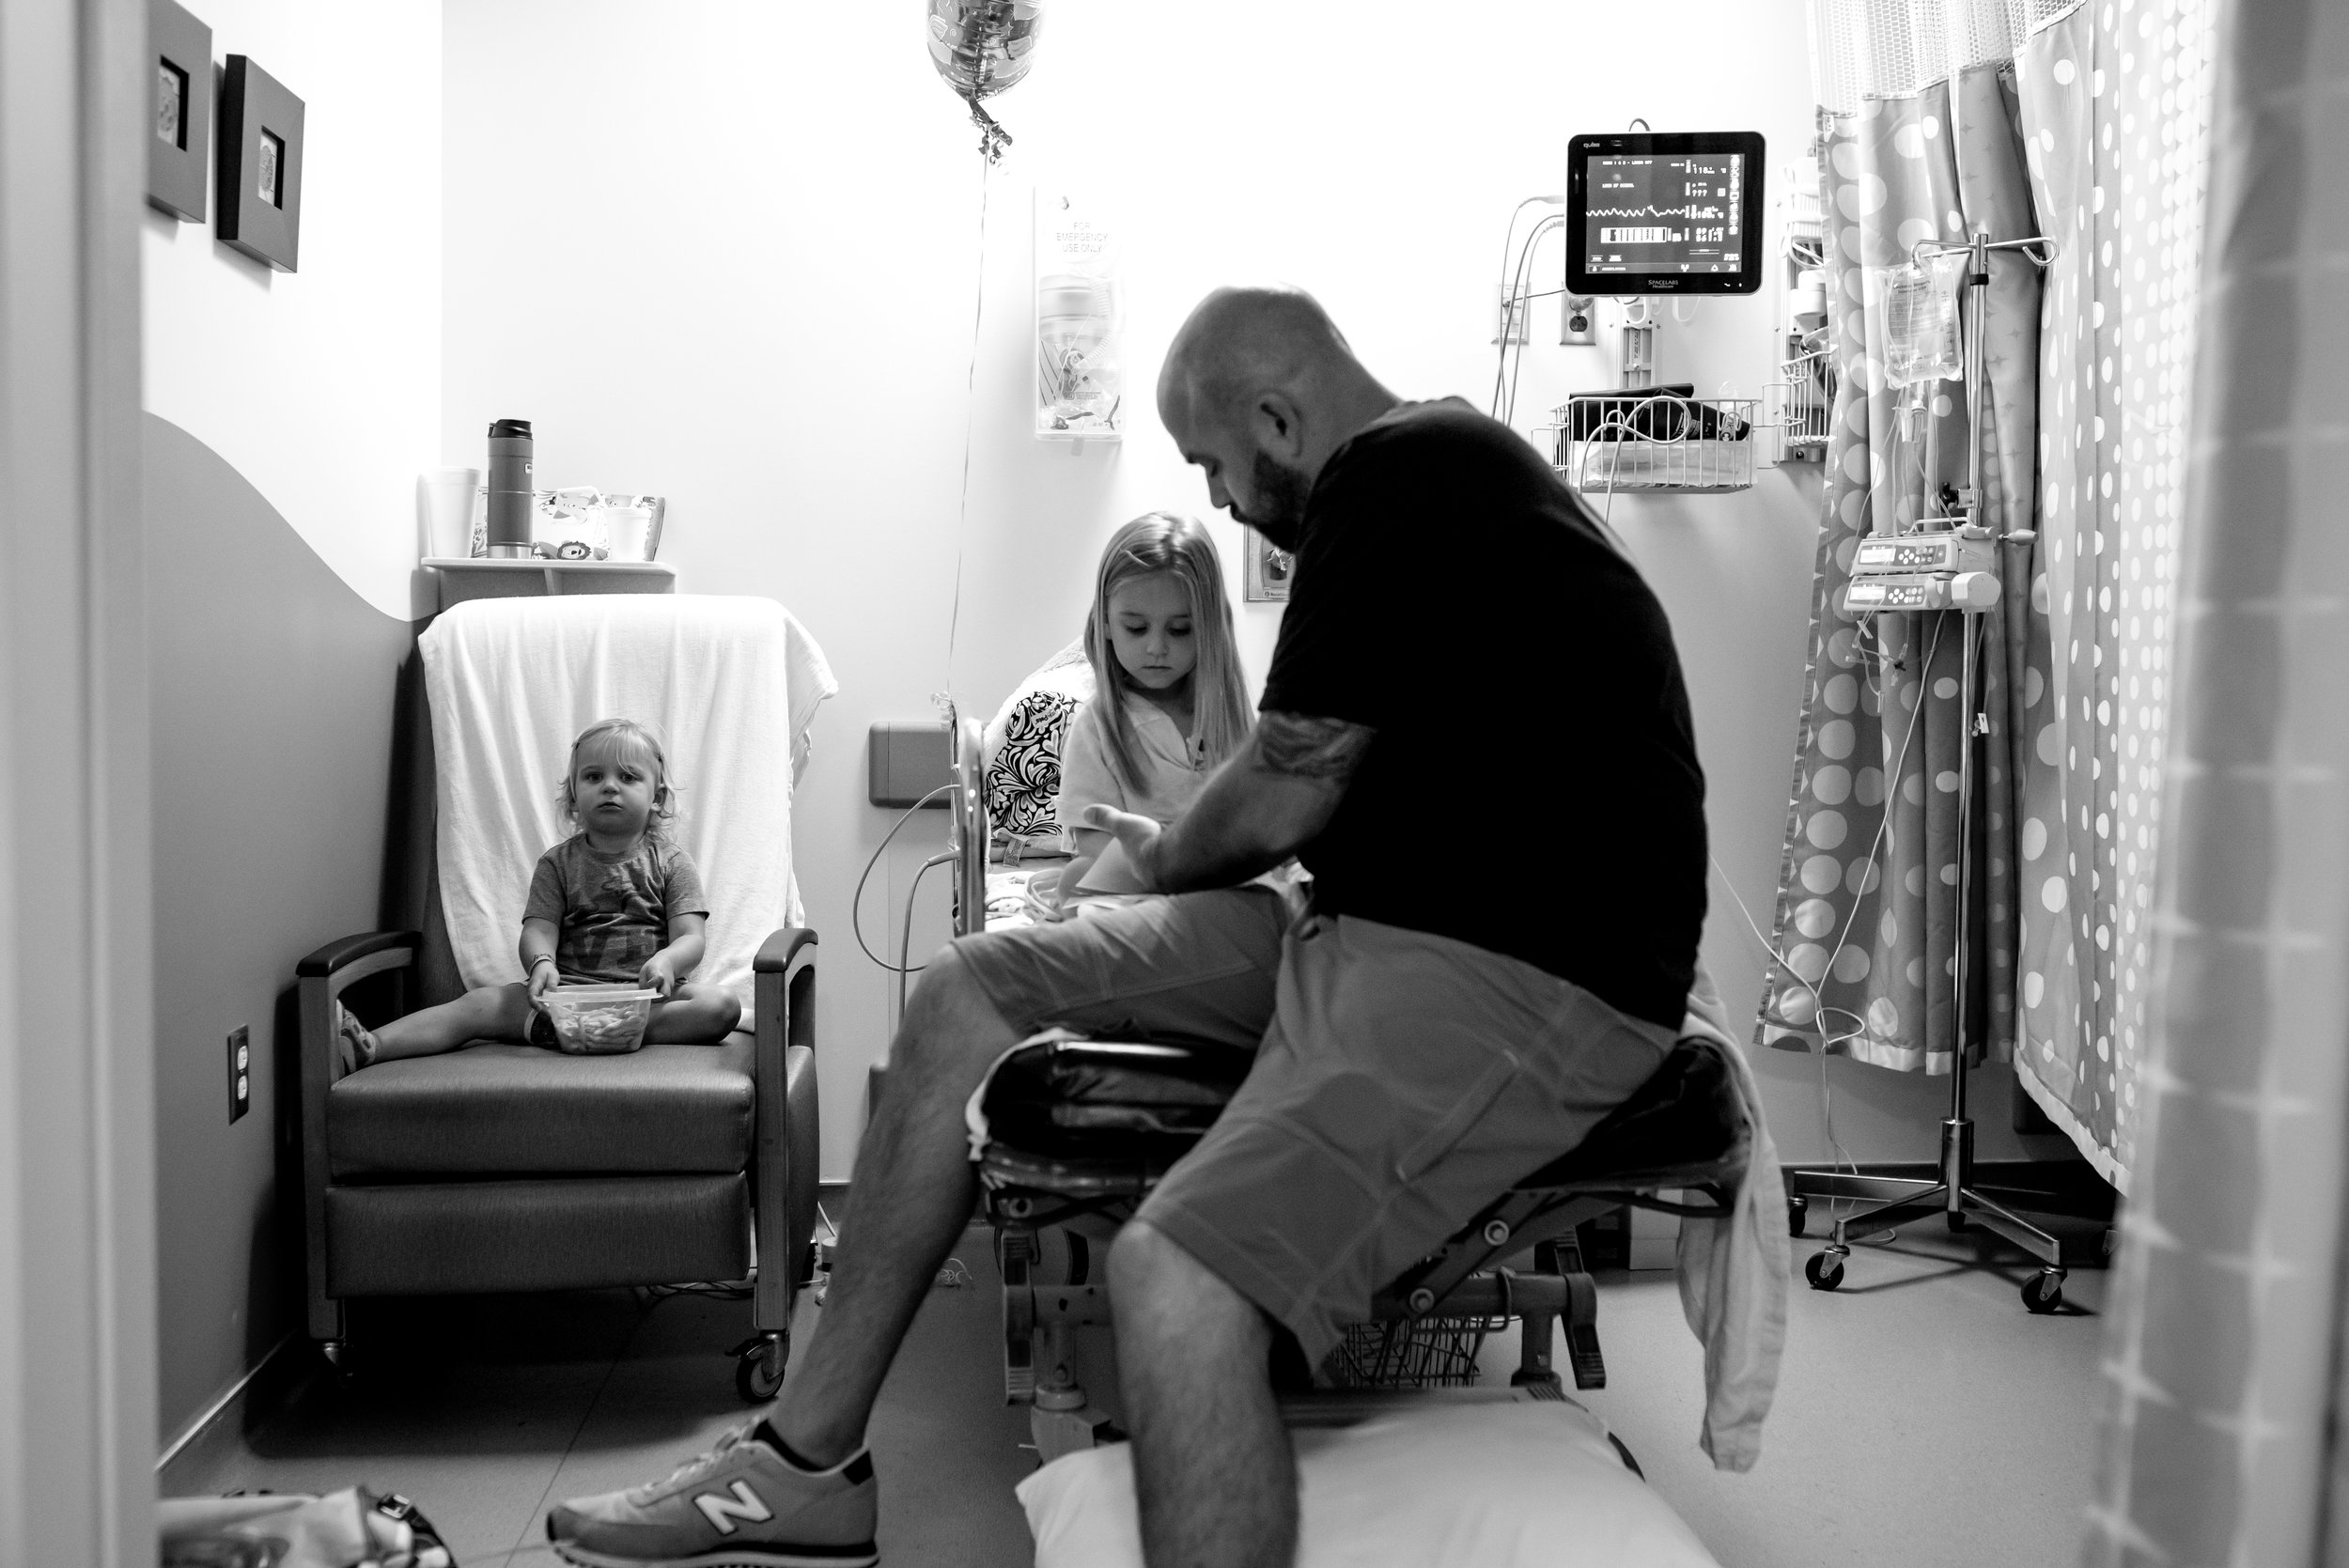 Dad and daughter look at book in hospital and girl eats snack